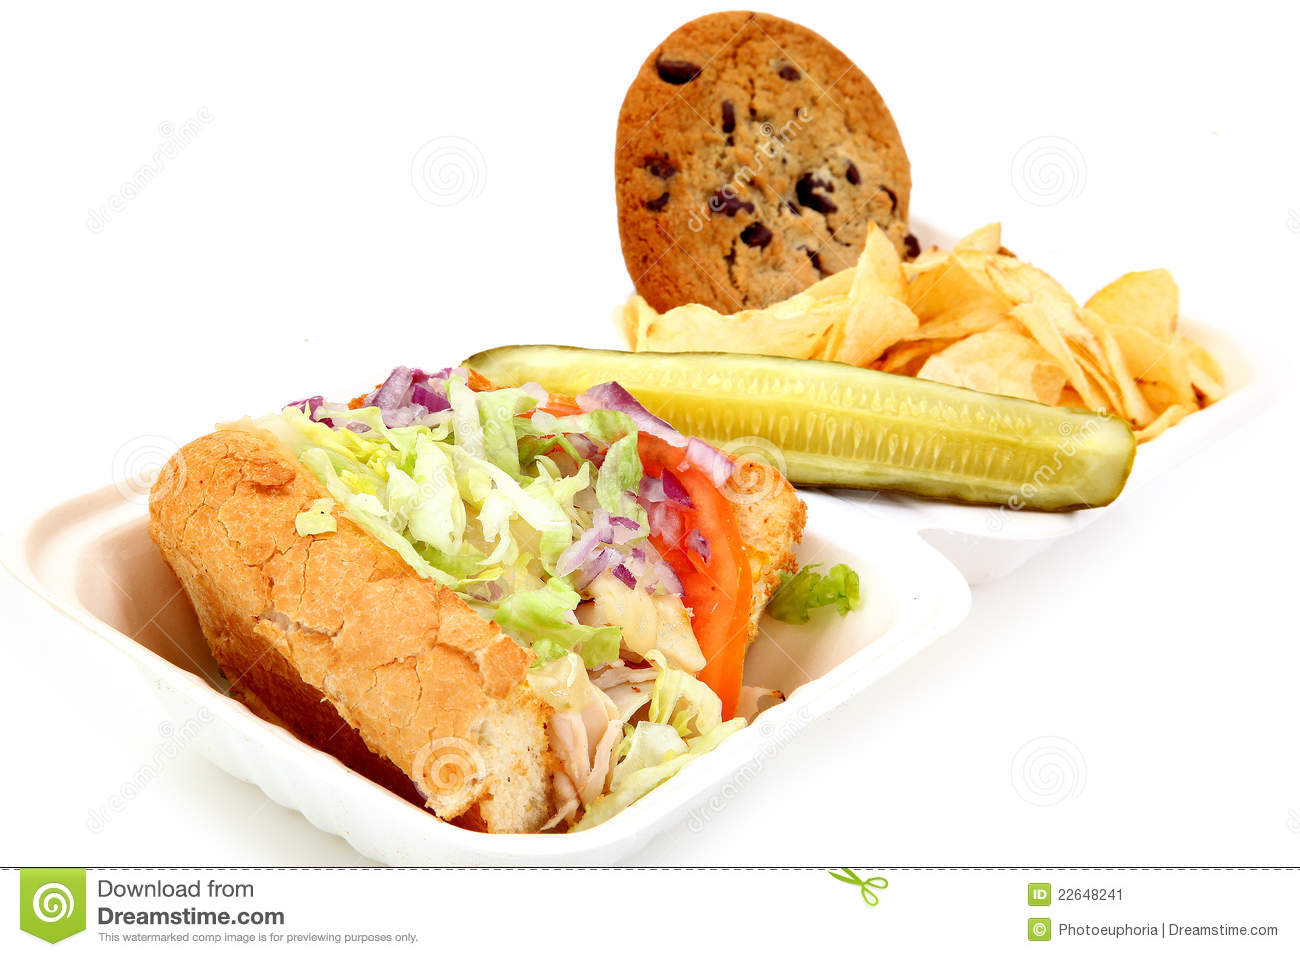 Types Sandwich Meats also Catering as well Stock Image Deli Turkey Sandwich Pickle Chips Cookie Image22648241 together with 08134 additionally Freezer Storage Times. on turkey cold cuts